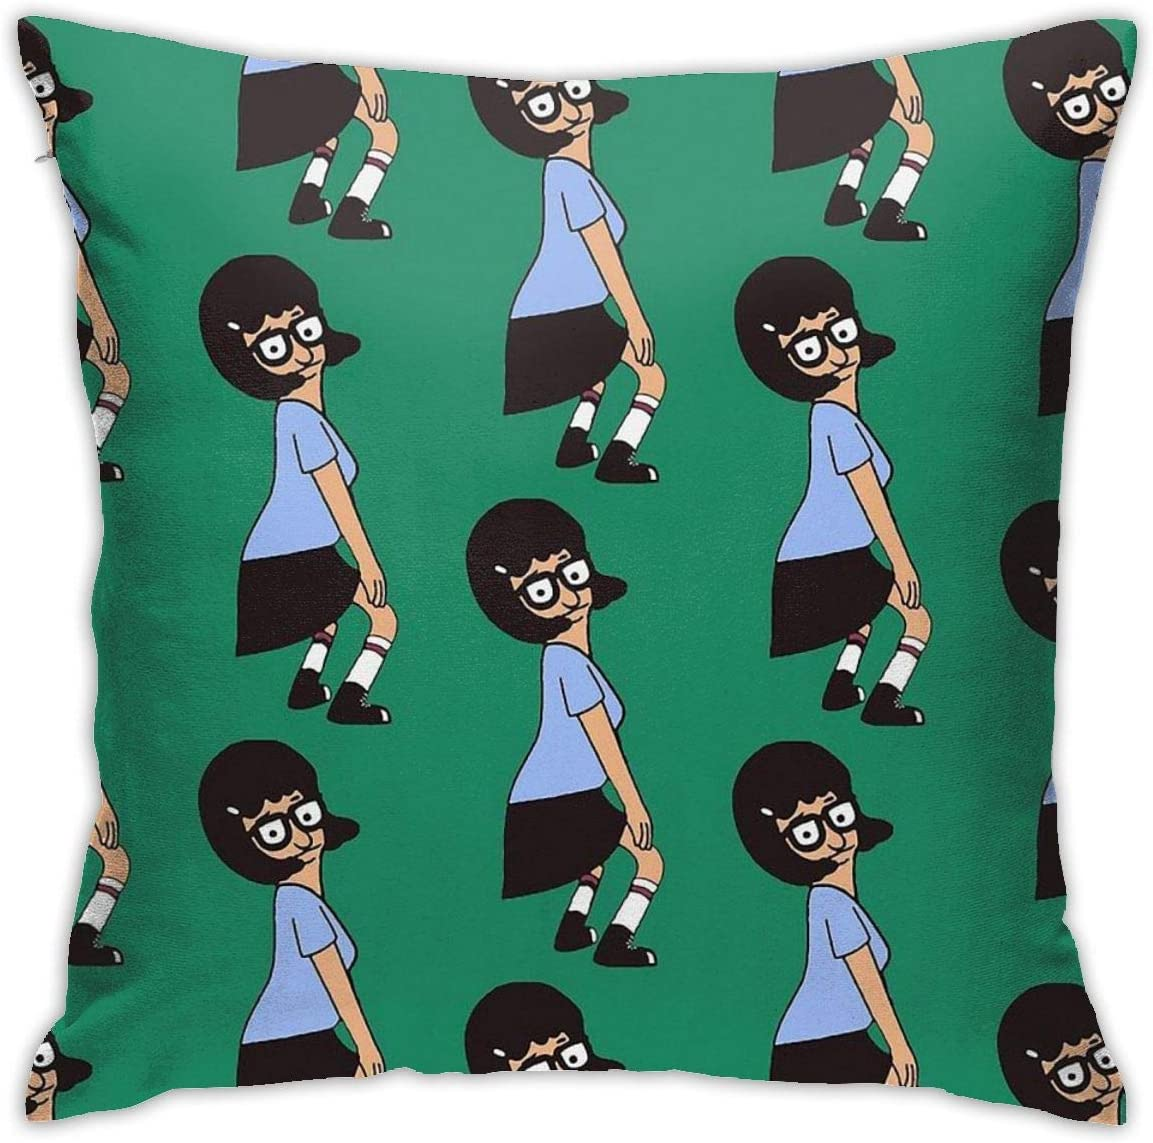 Double-Sided Jay Franco Bobs Burgers I Like Butts 1 Single Reversible Pillowcase Features Tina Belcher Super Soft Bedding Official Bobs Burgers Product